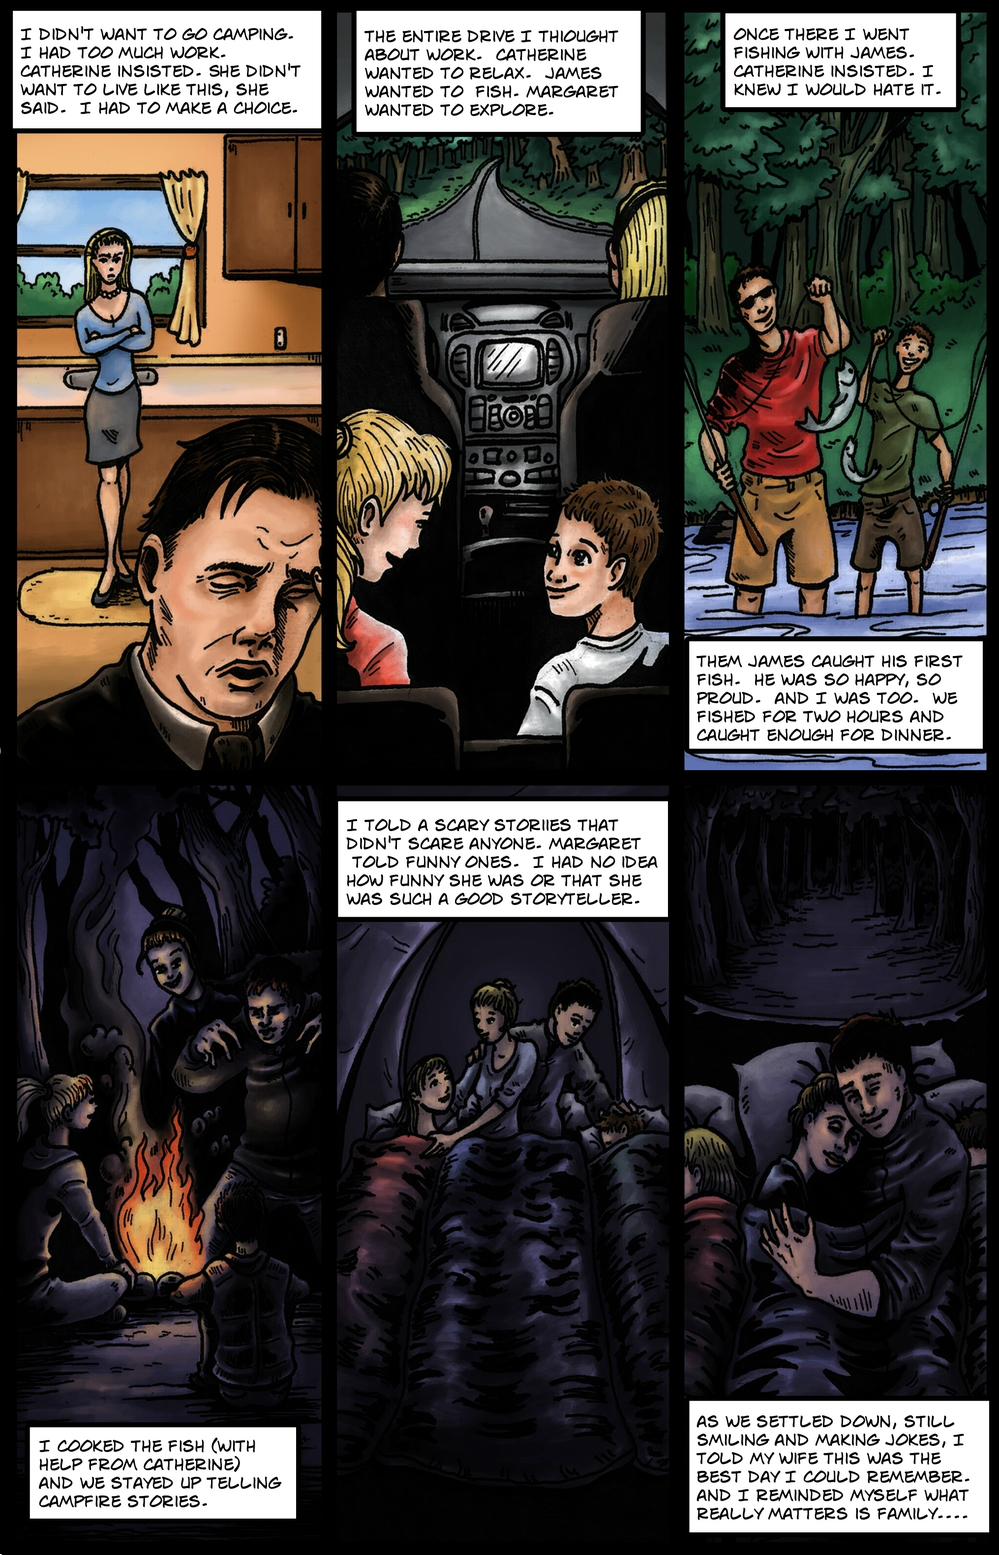 COCOON page 2 - story 9 in The Book of Lies